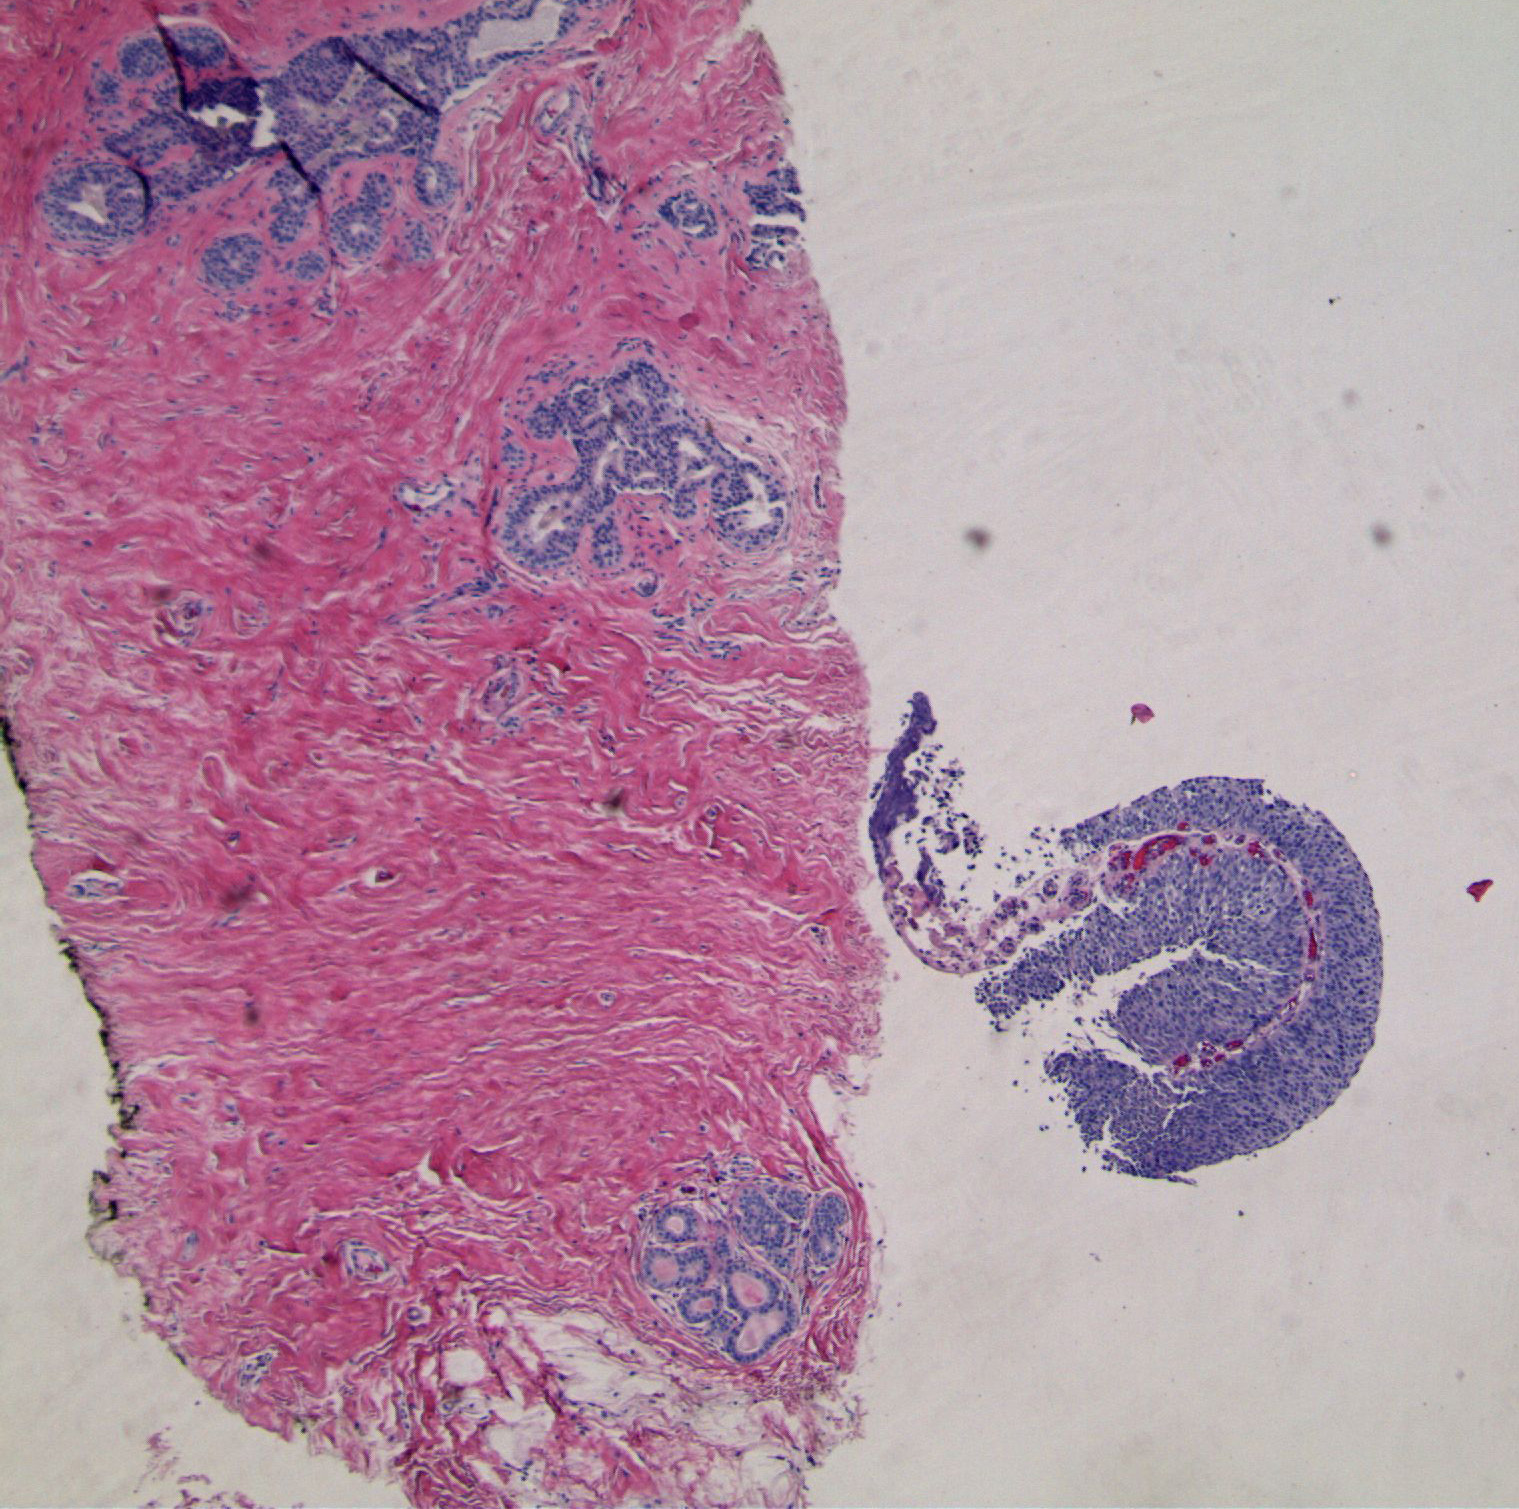 Image 1.  Interlobular stroma is dense, and there is mild hyperplasia (left).  A separate fragment of tissue is cellular and uniform (right).